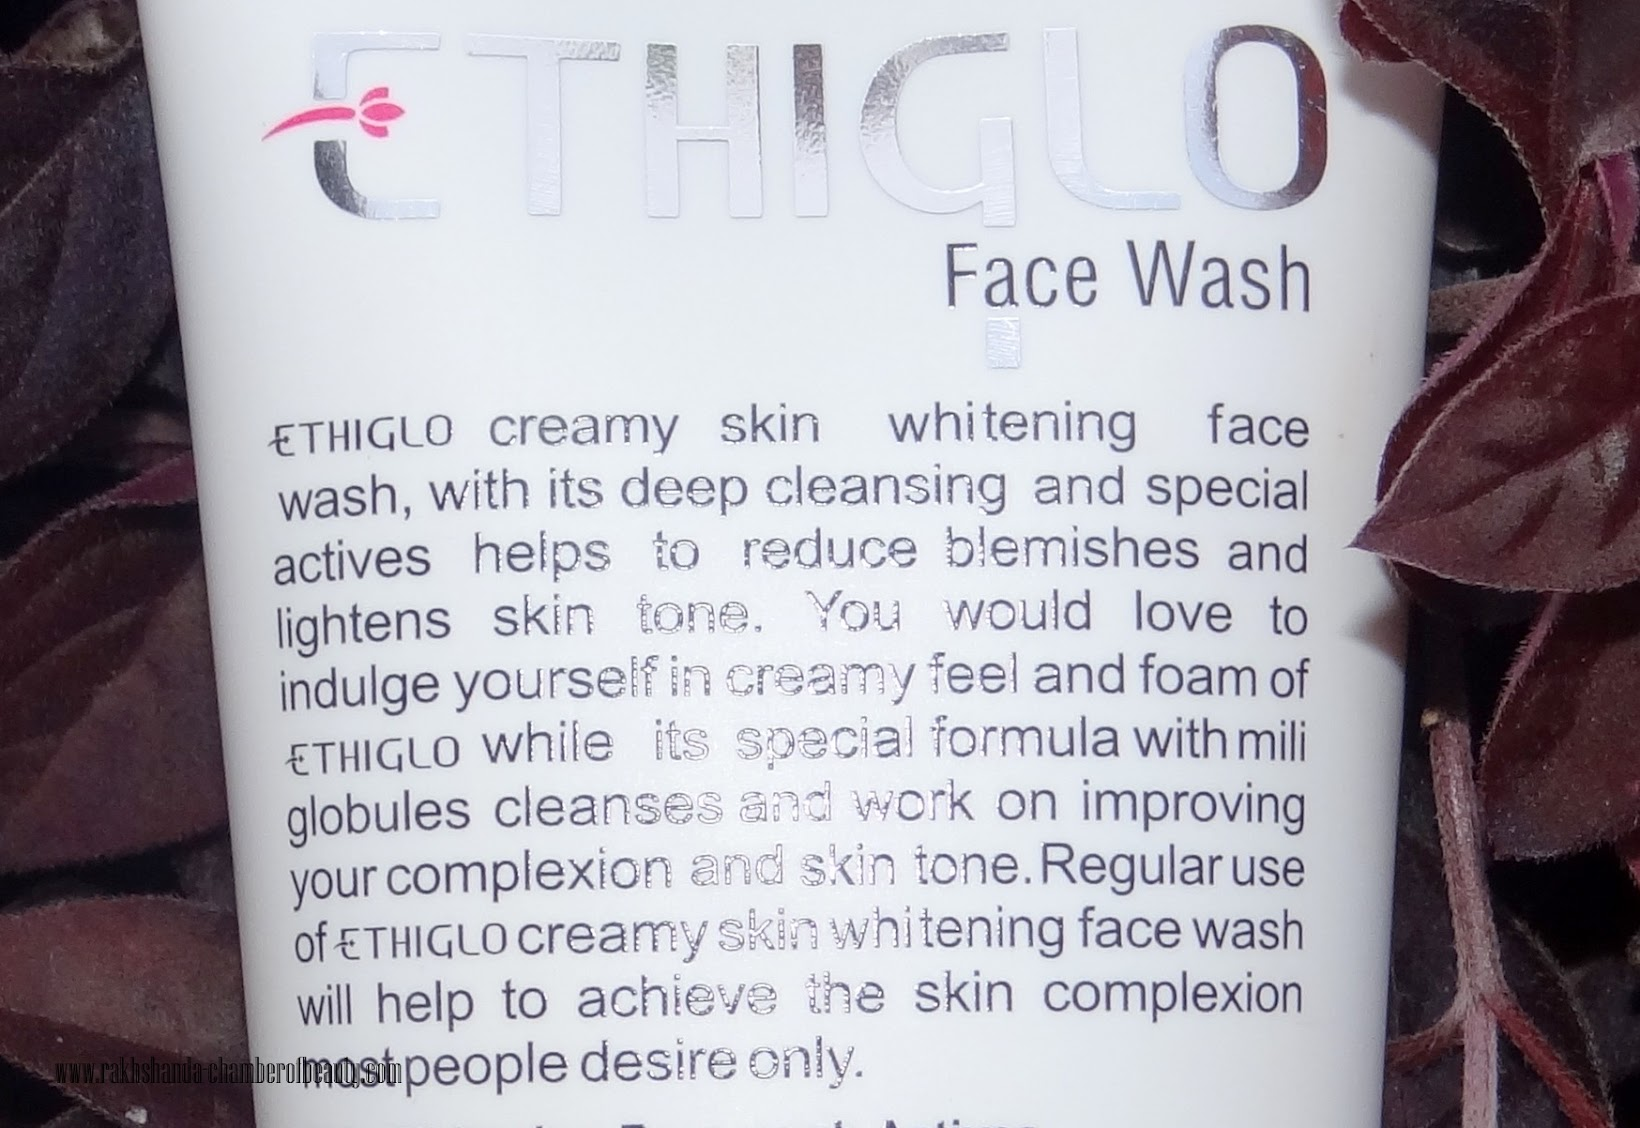 Ethiglo Skin Whitening Deep Cleansing Facial Foam Review & Price in India, skincare in monsoon, products for oily/combination skin in India,Indian beauty blogger, Chamber of beauty